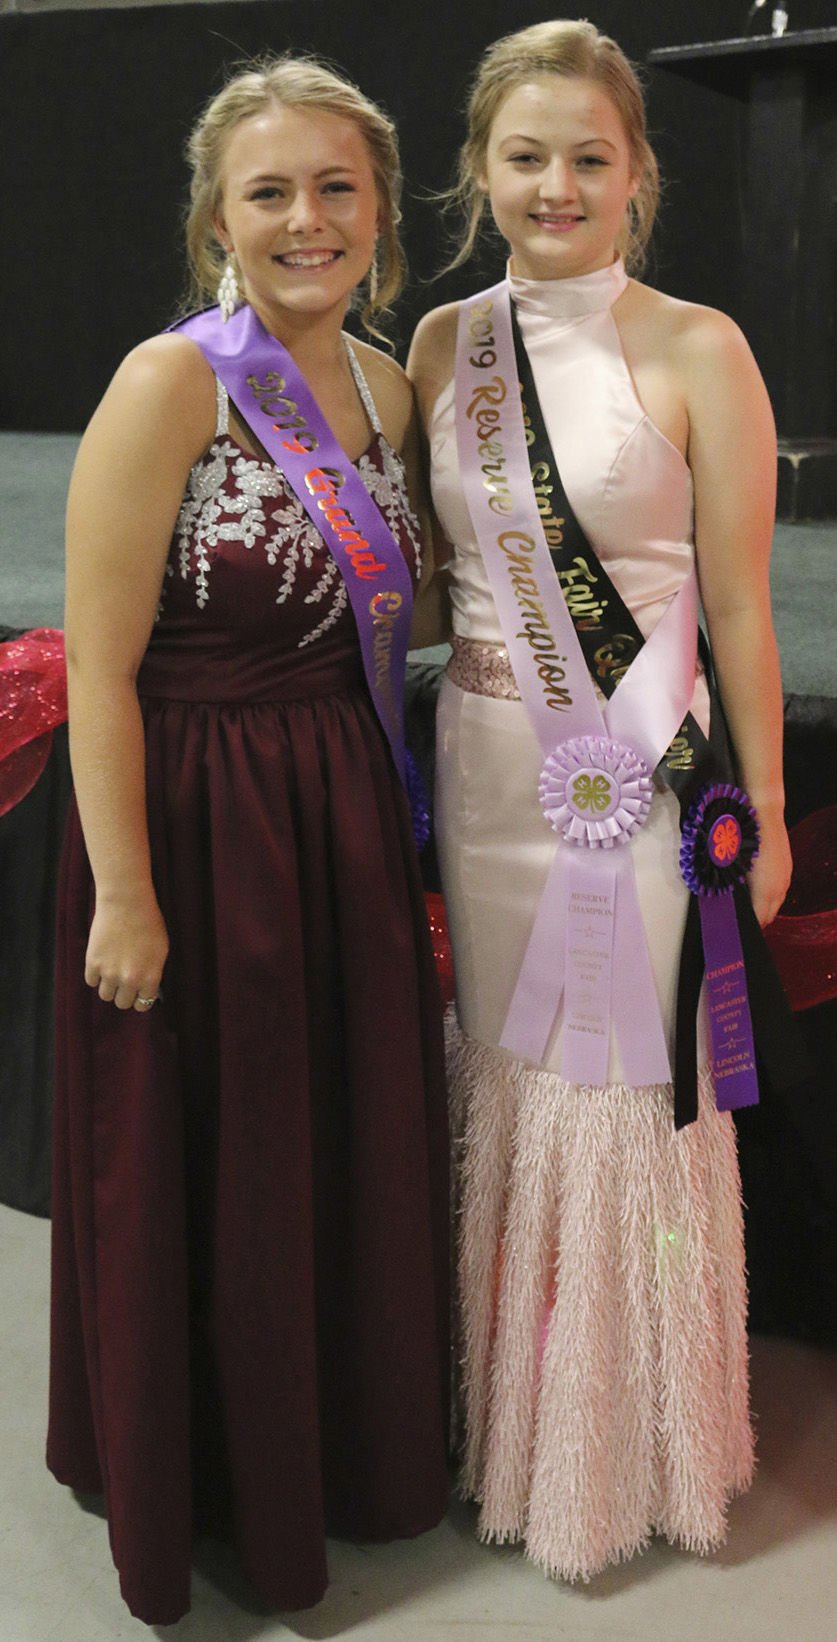 4-H Fashion Show champions Kali Burnham and Eliana Babcock